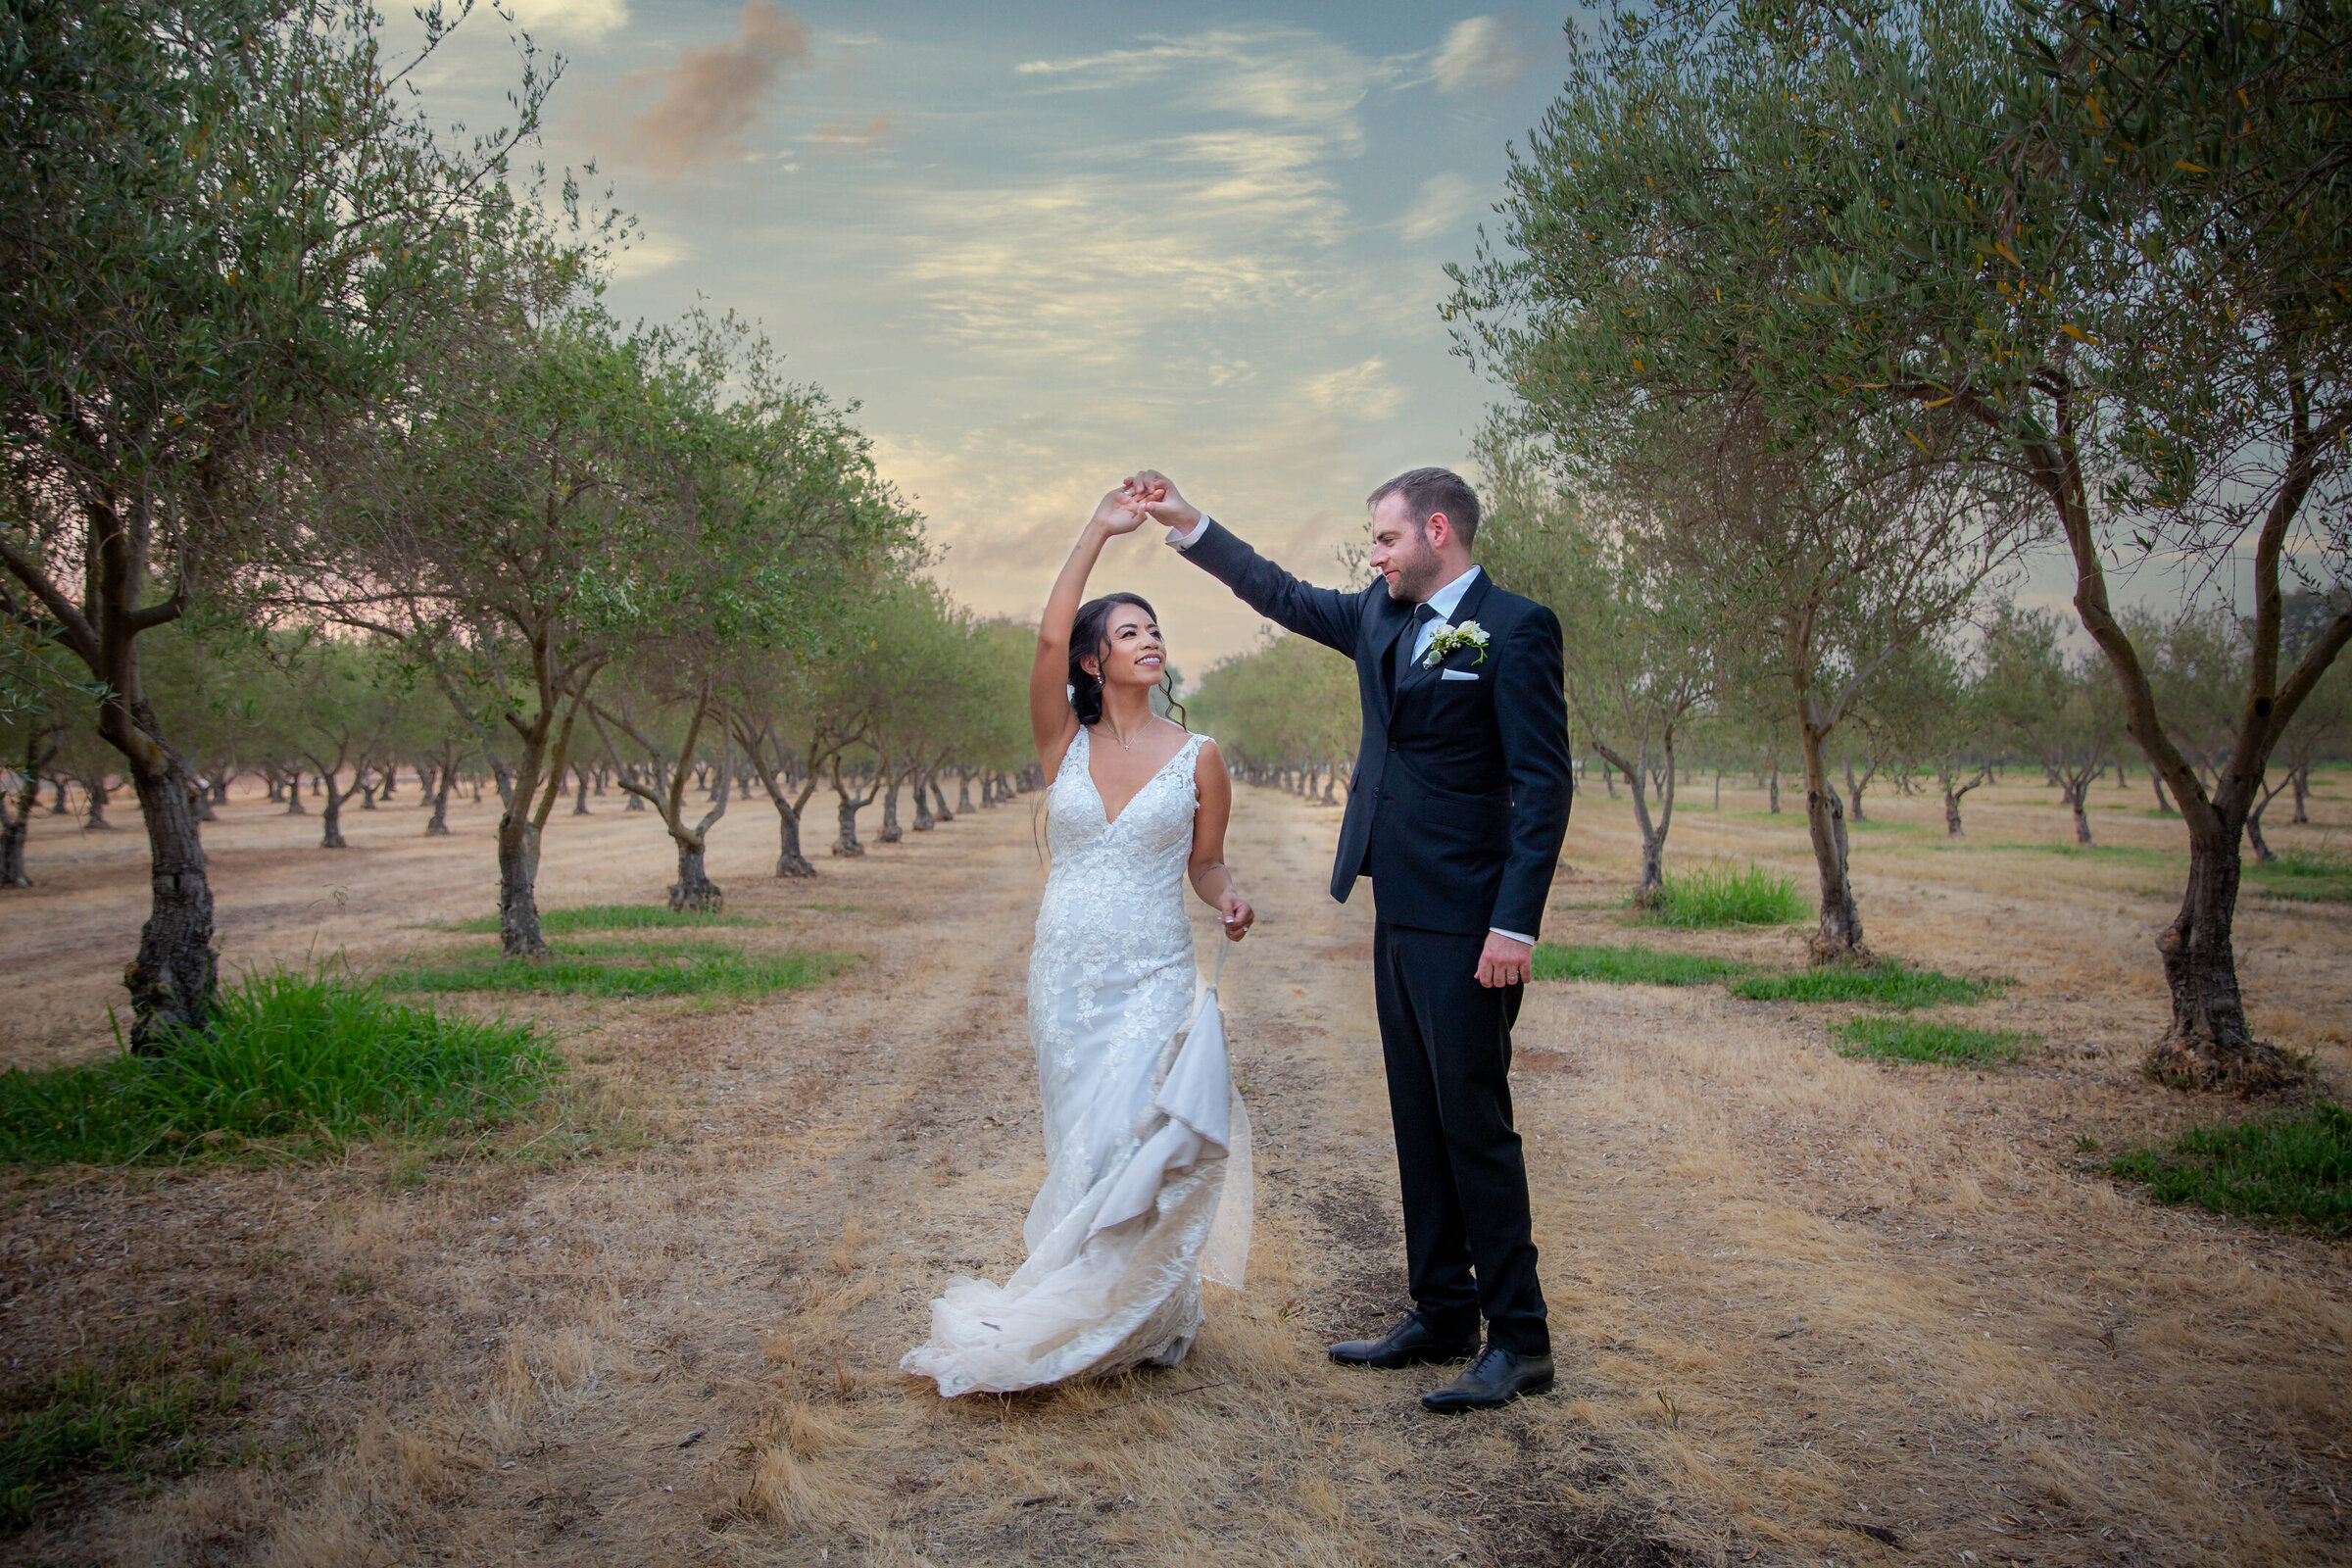 Groom twirling bride in the middle of a vineyard with the bride smiling looking at the groom at Wolfe Heights Event Center, photo by wedding photographer in sacramento ca philippe studio pro